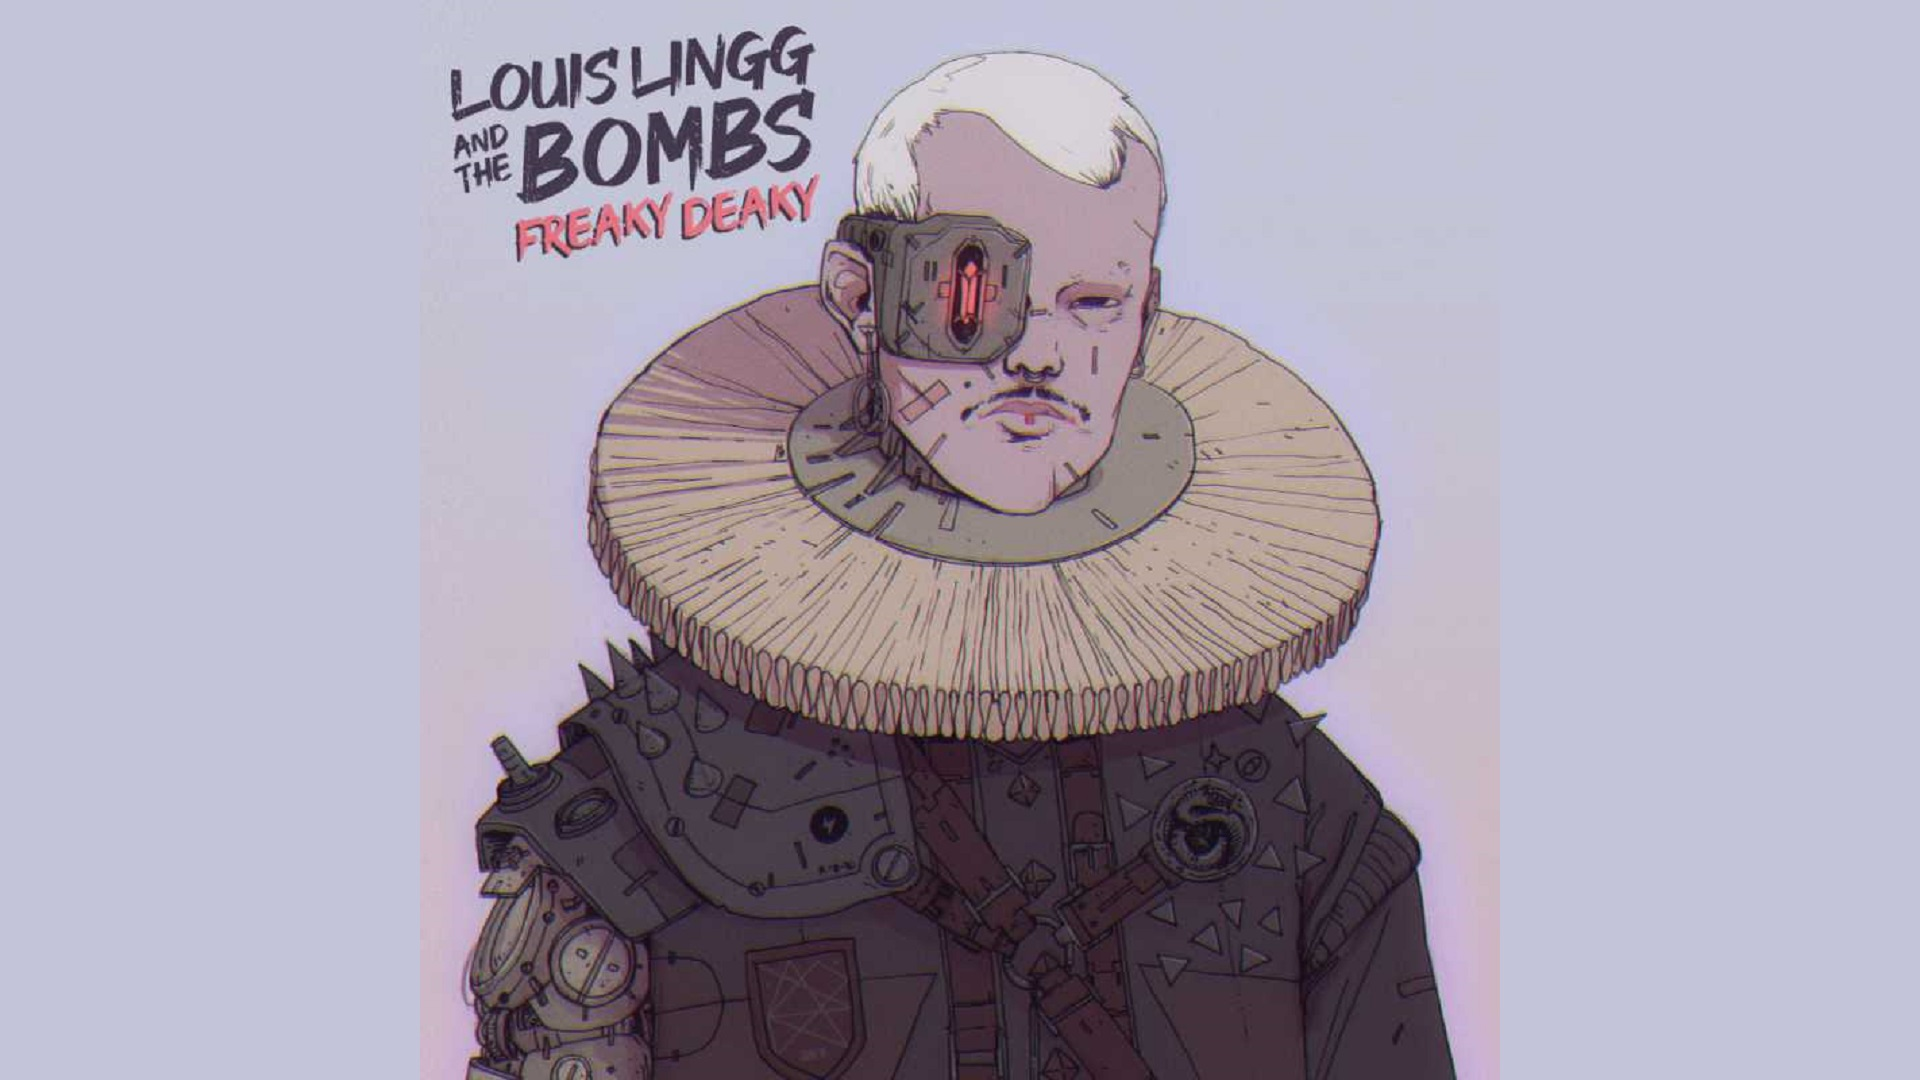 Louis Lingg And The Bombs - Freaky Deaky